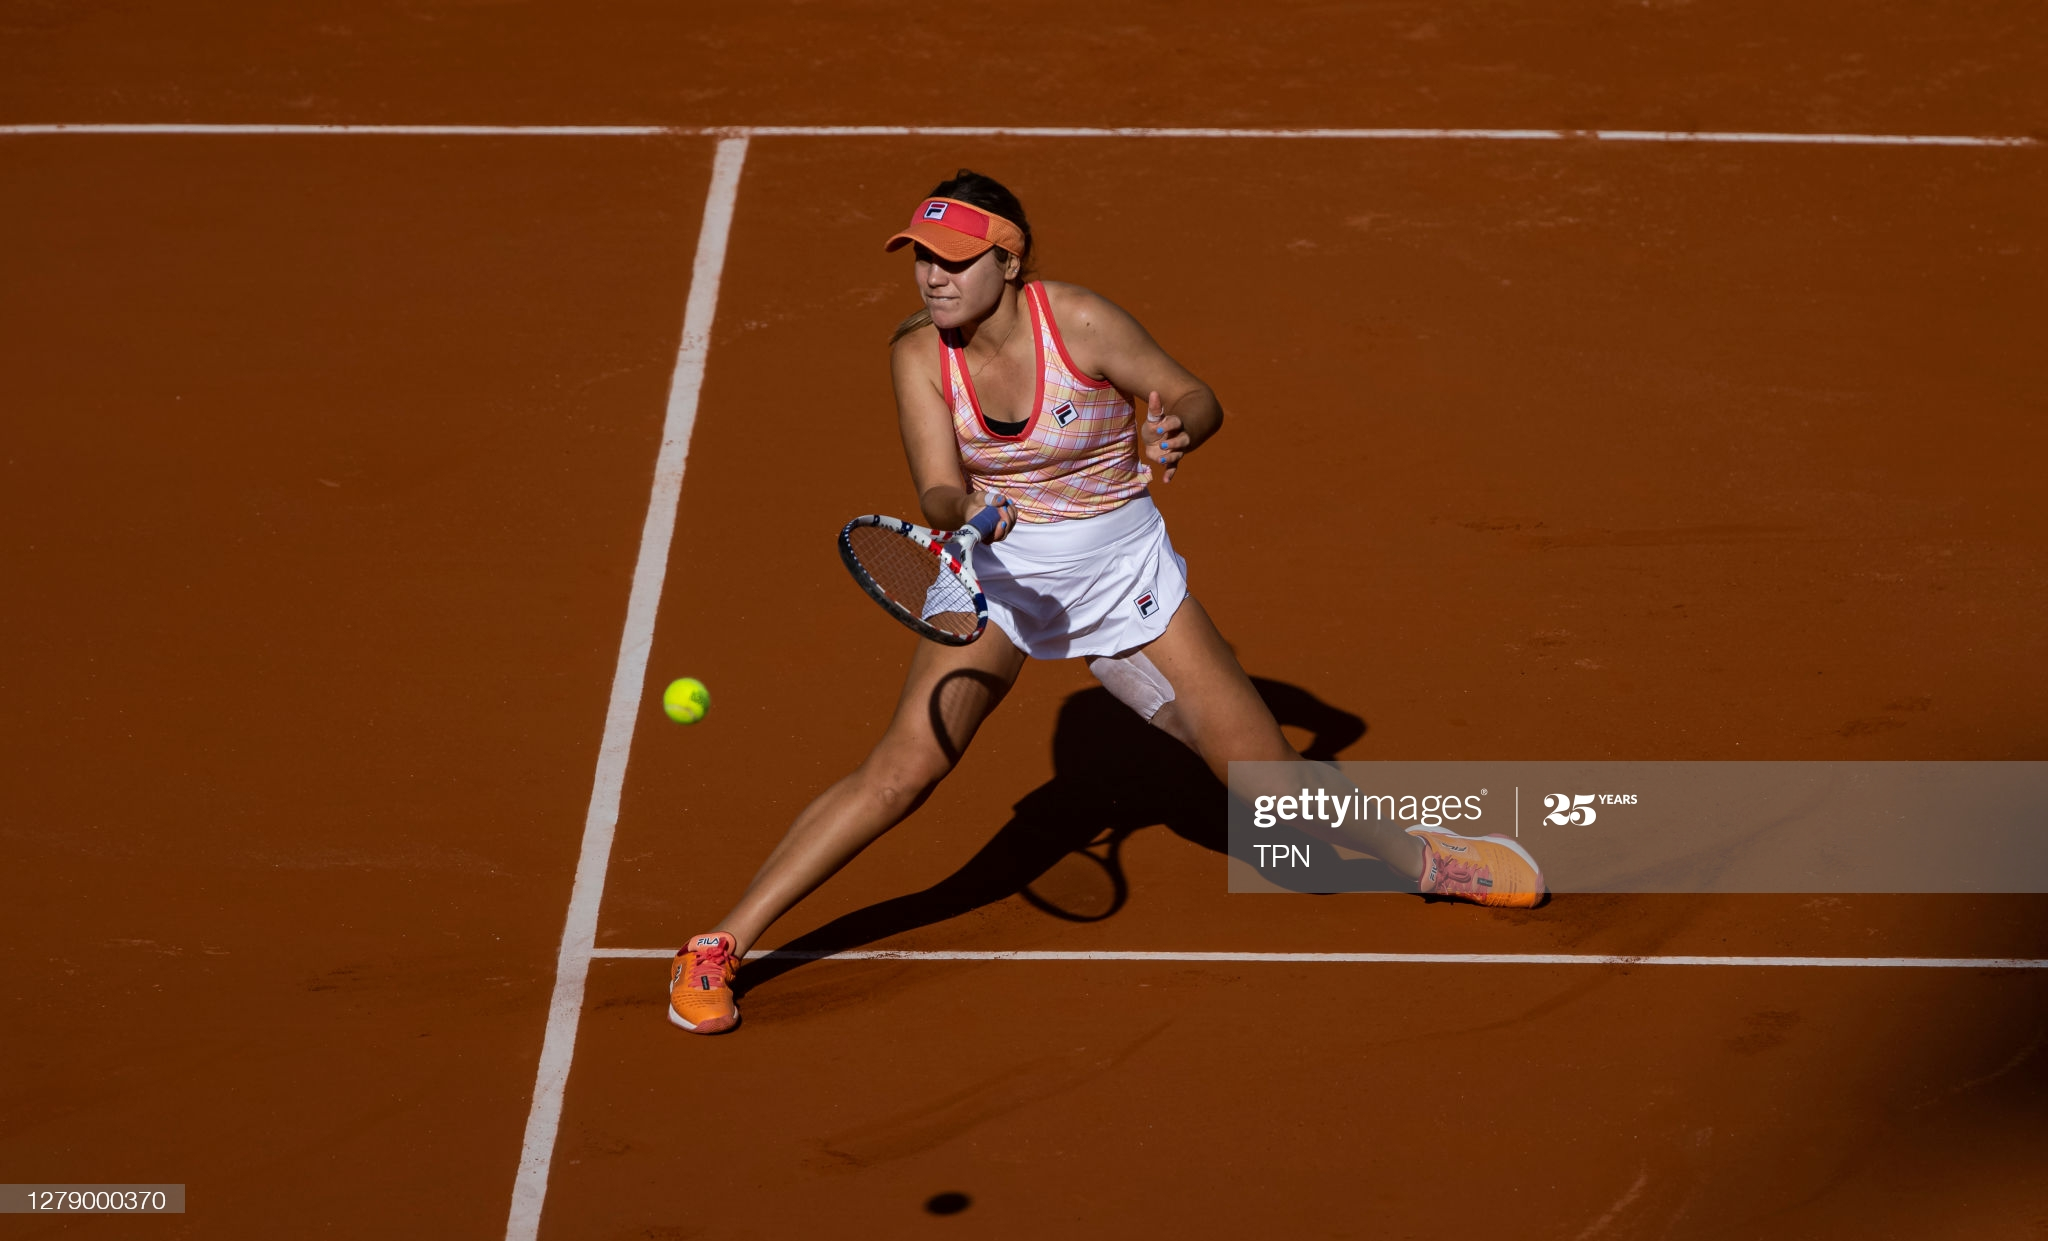 kenin day 11 french open 2020.2